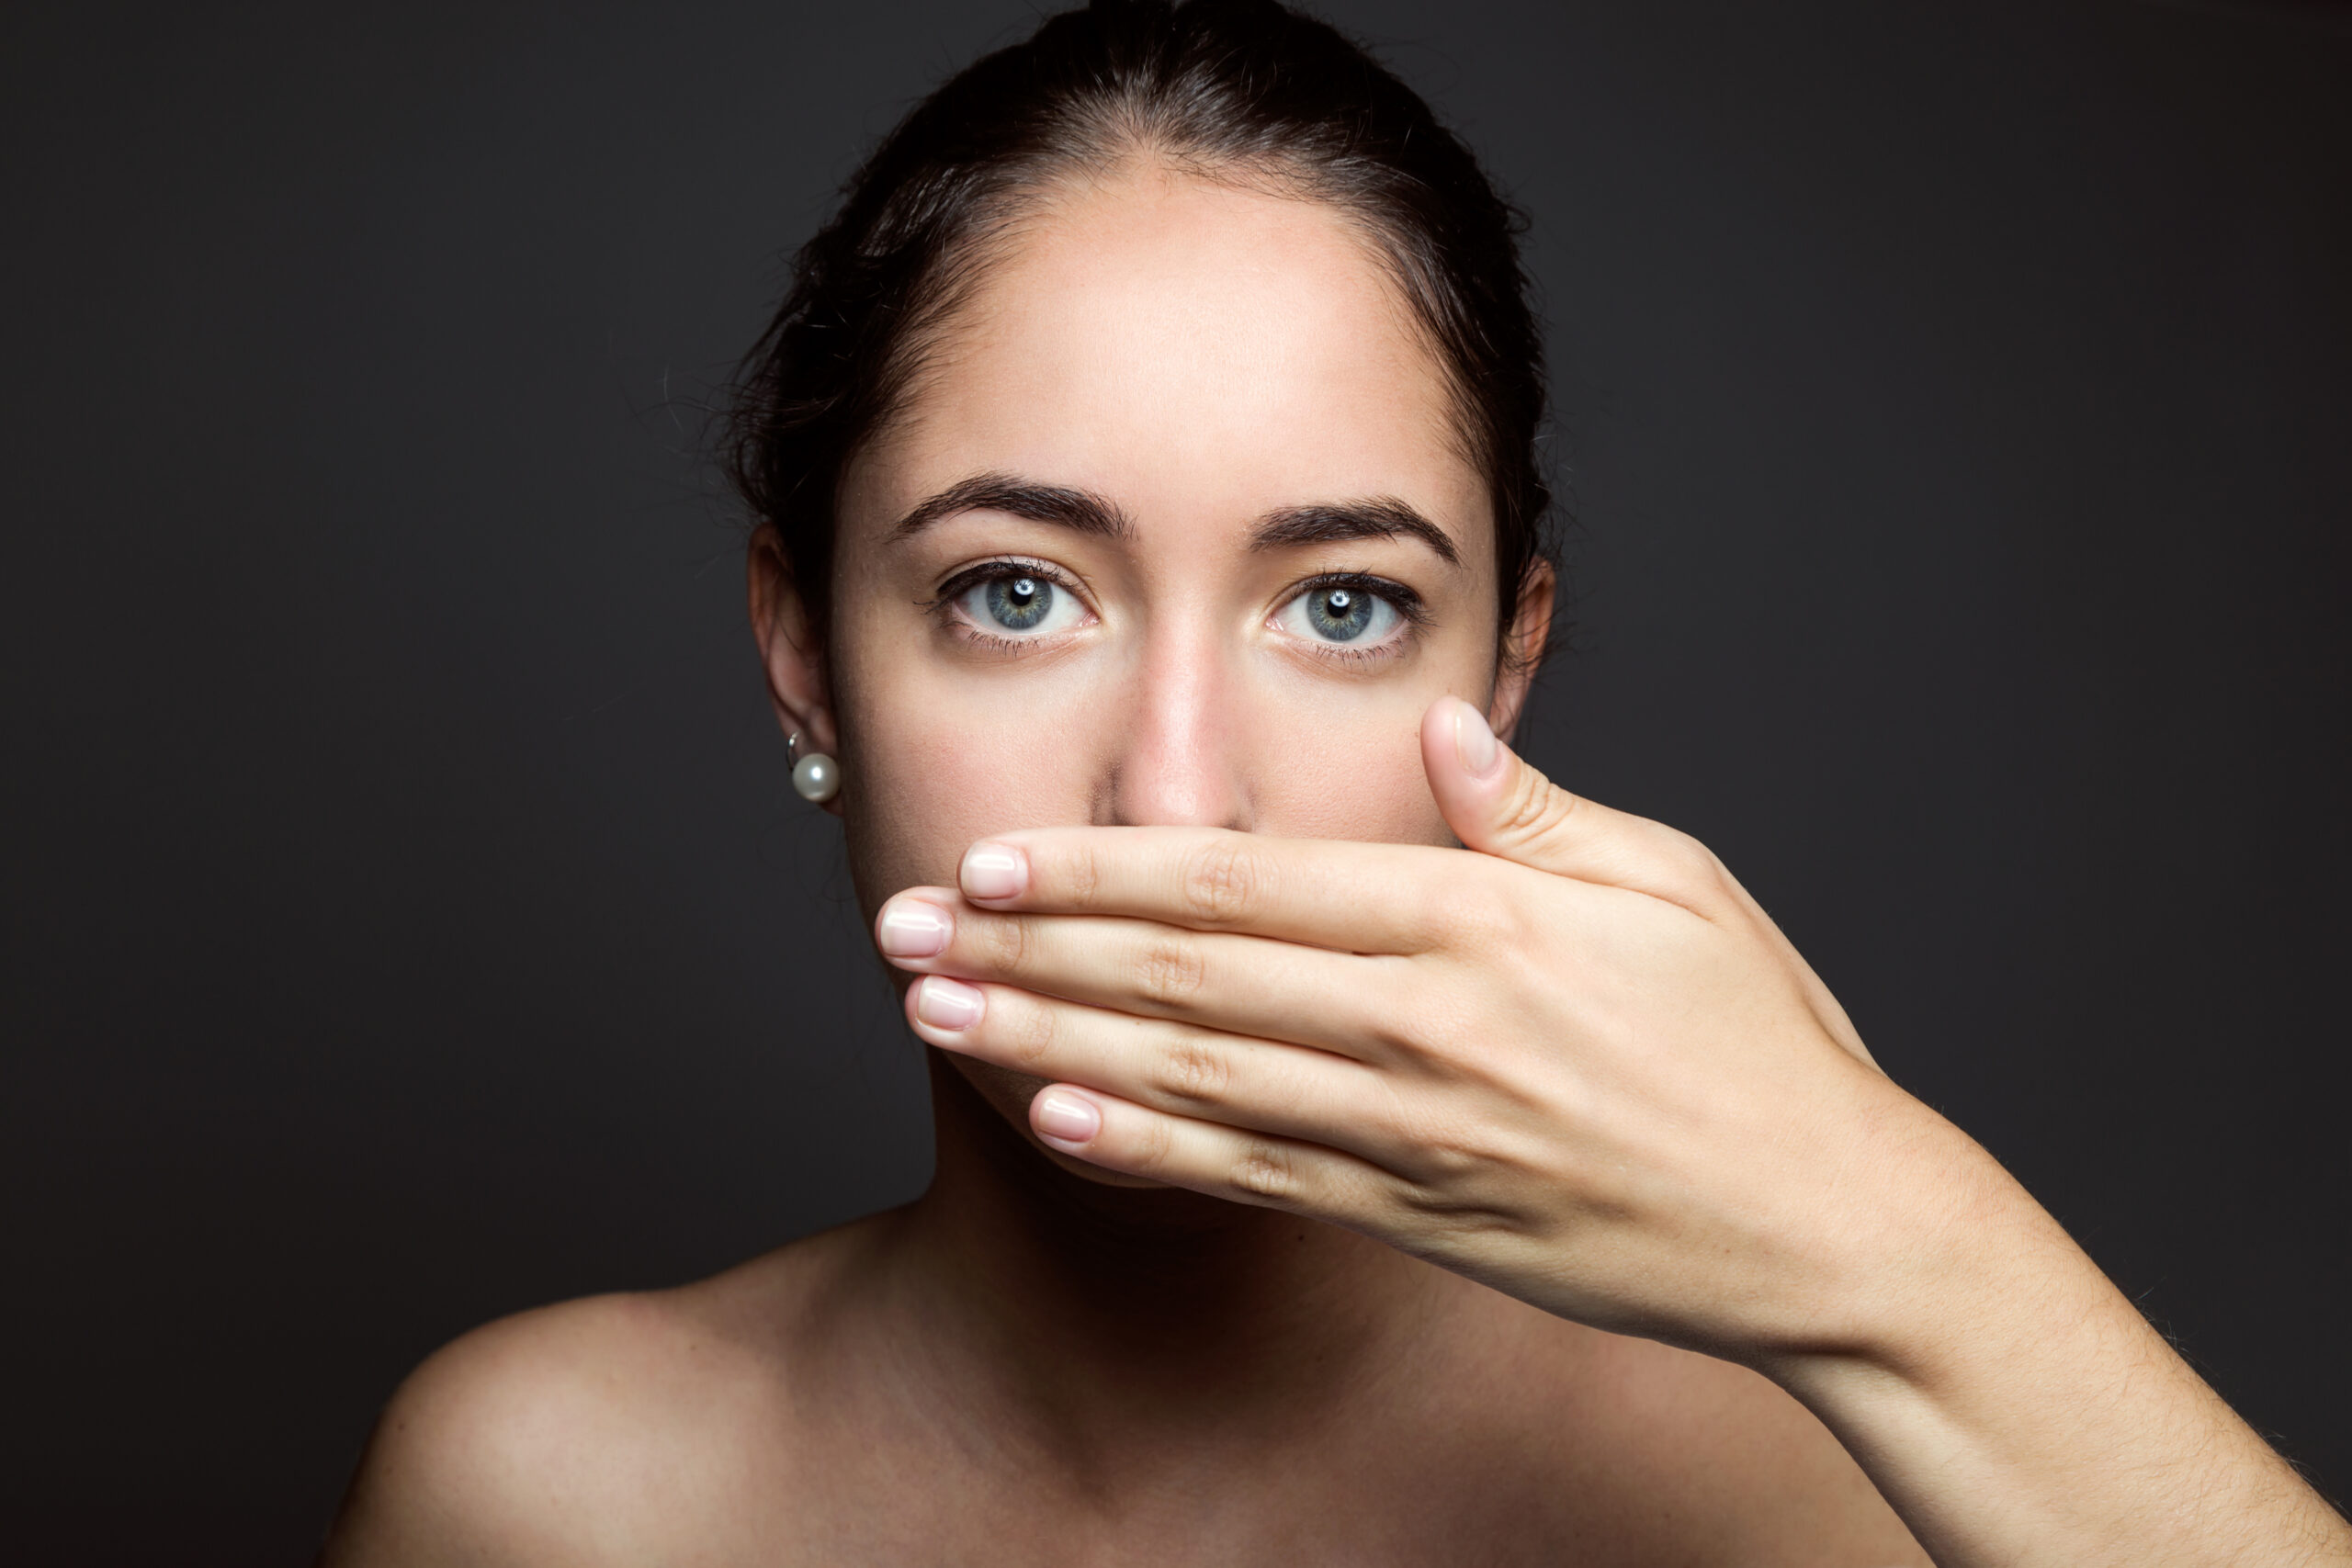 Beautiful young woman covering her mouth with hand. Isolated.